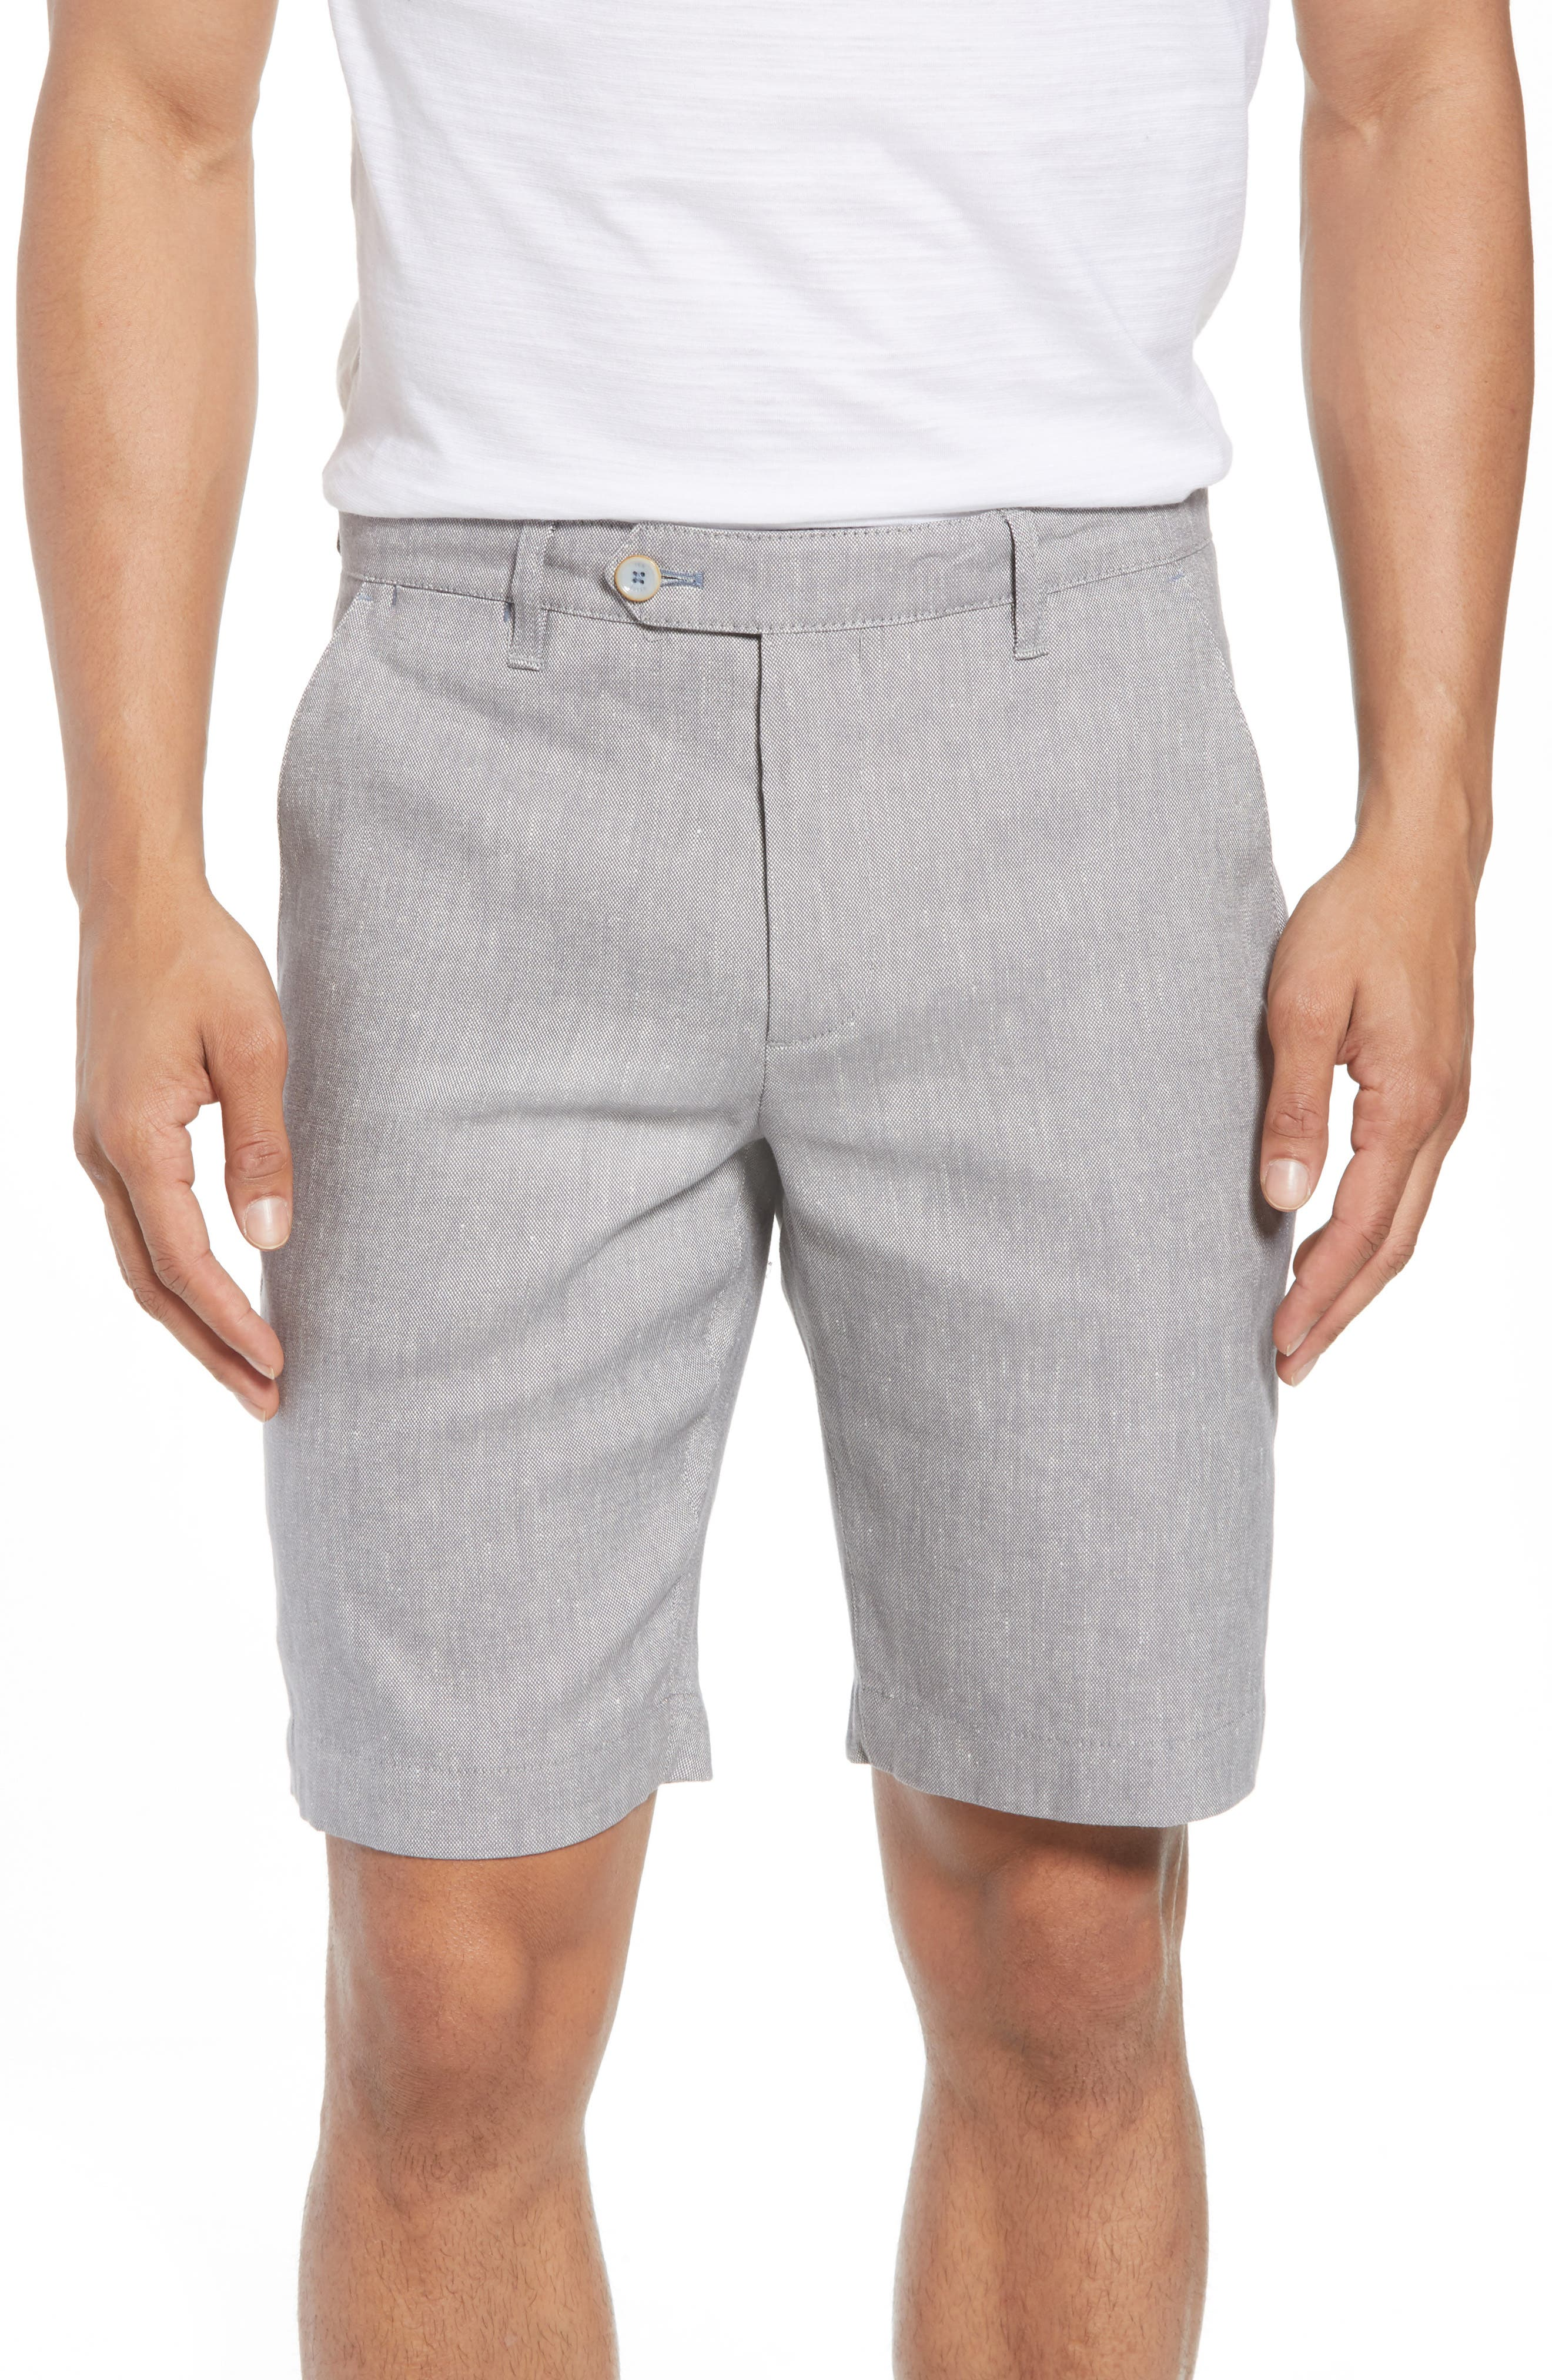 Alternate Image 1 Selected - Ted Baker London Newshow Flat Front Stretch Cotton Blend Shorts